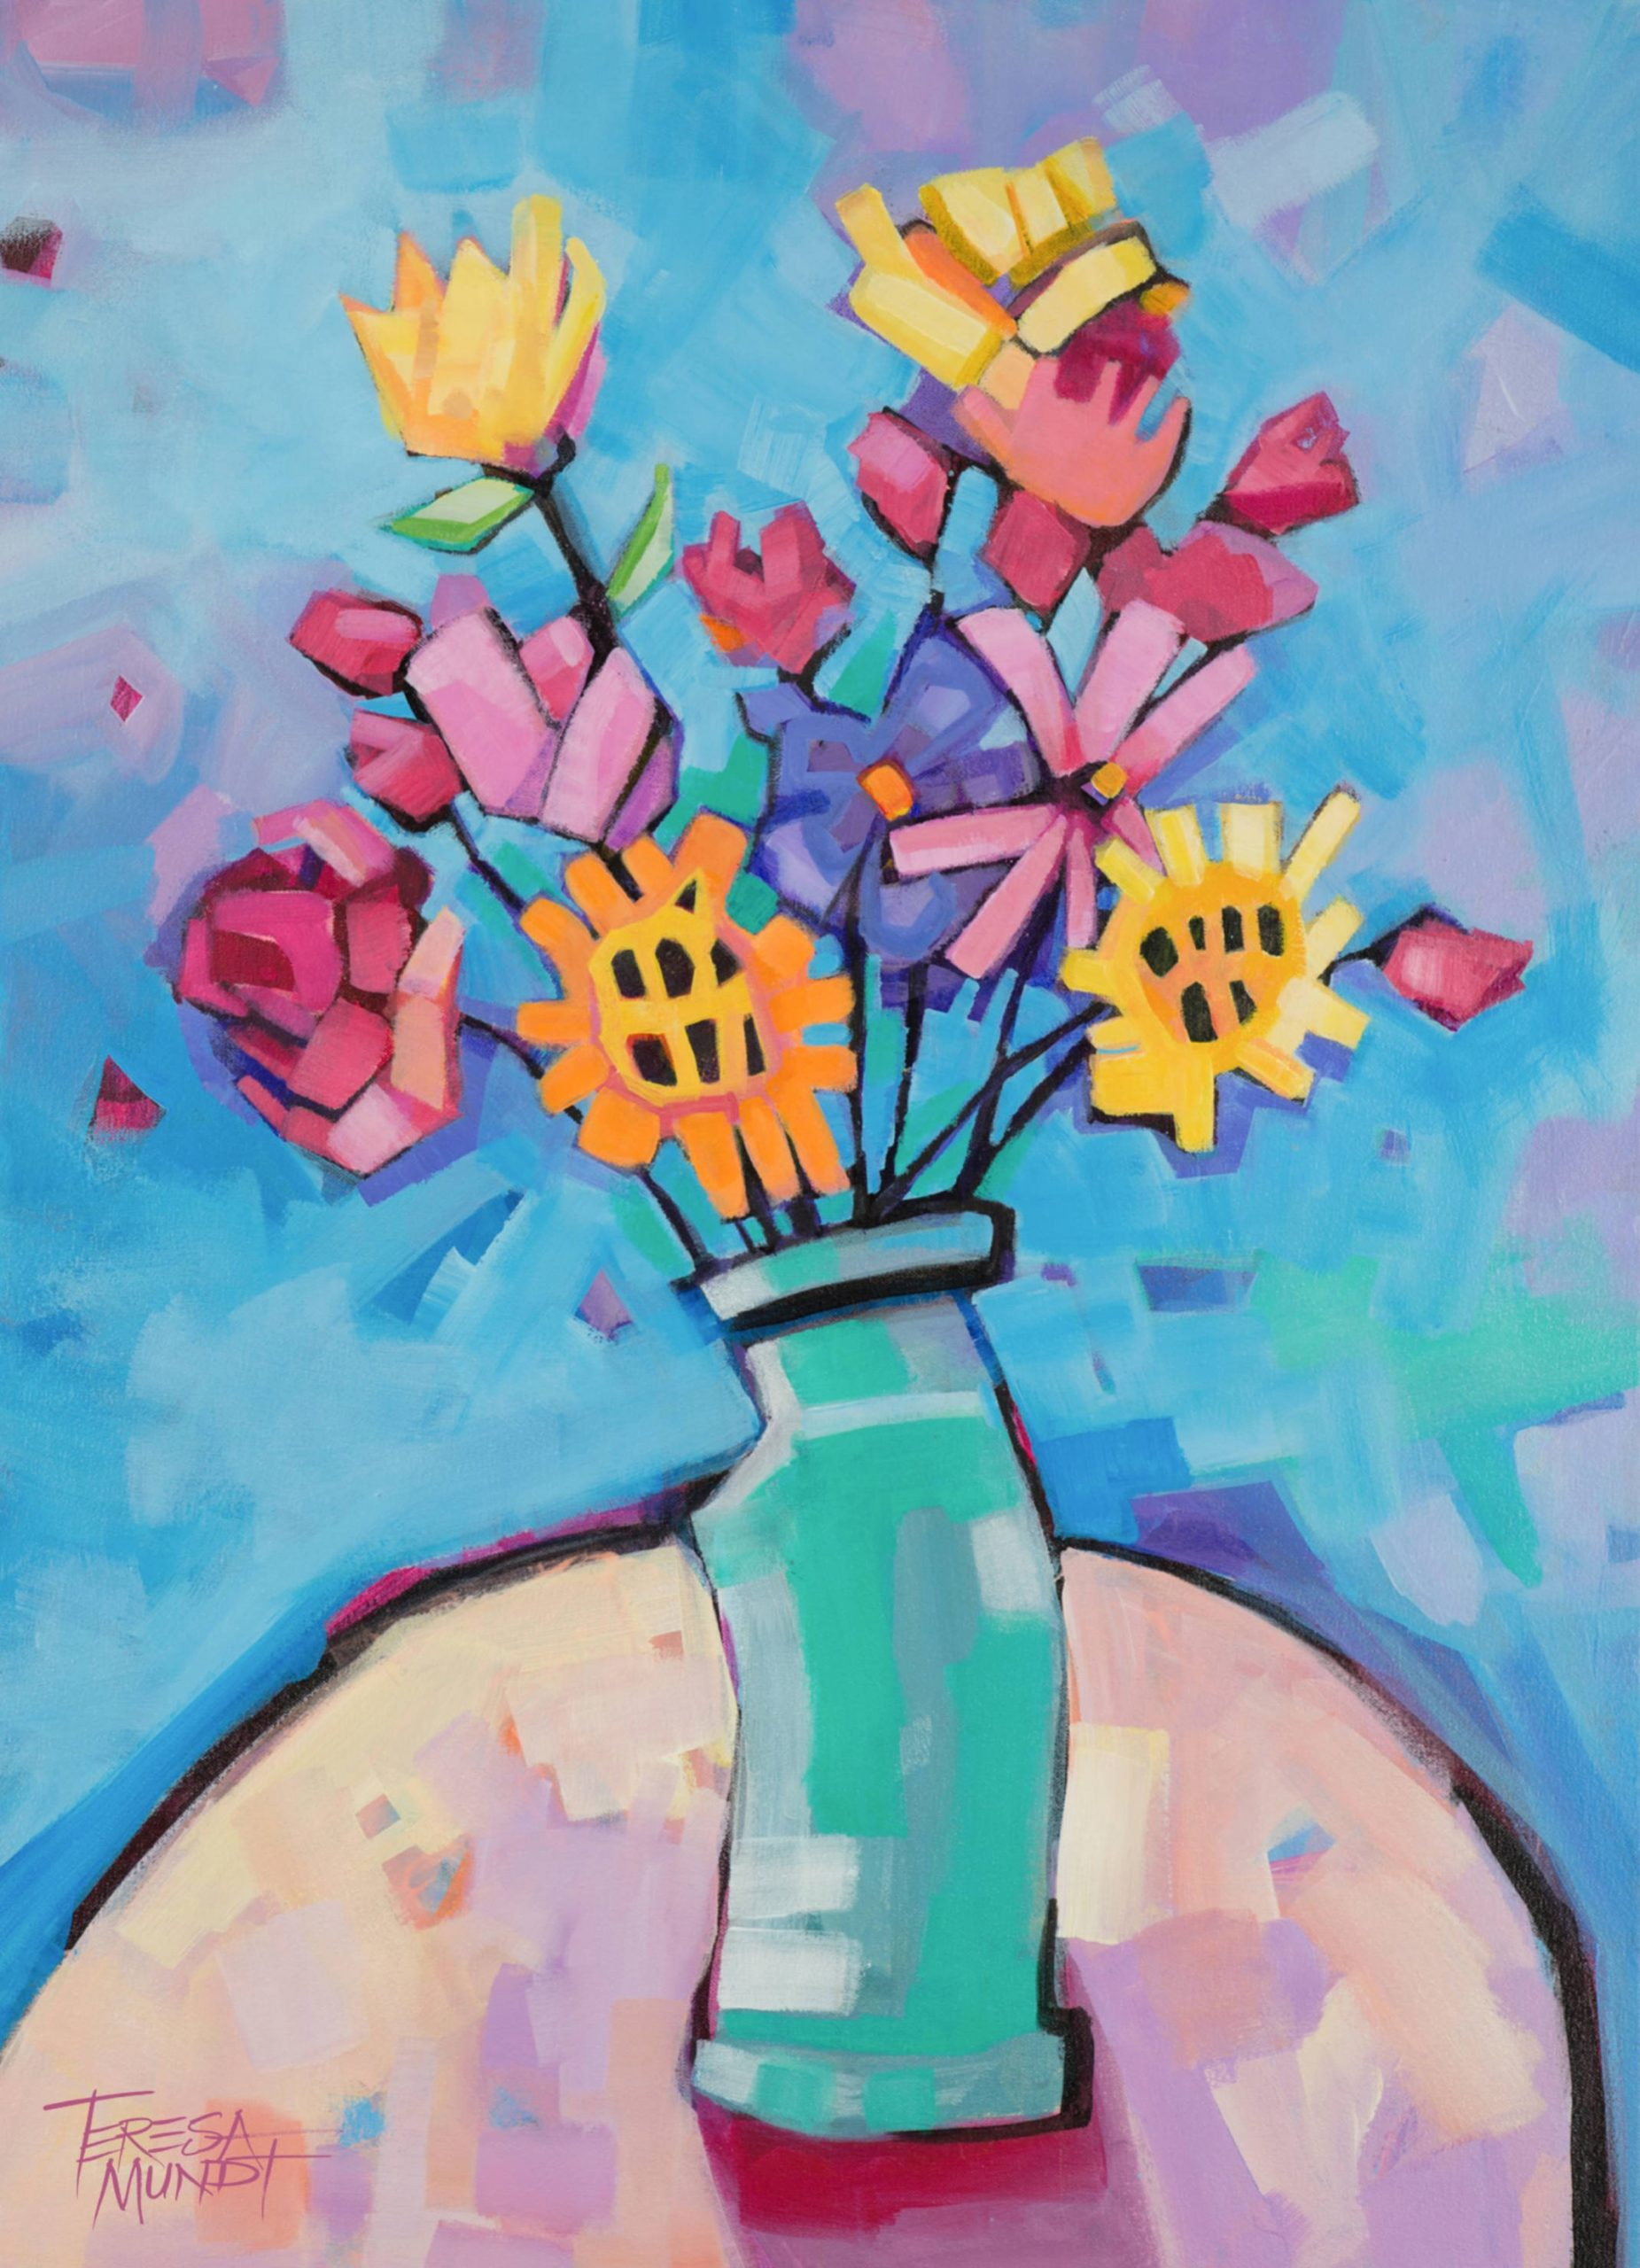 Green Vase By Teresa Mundt Colourful Colorful Floral Still Life Flowers Art Painting